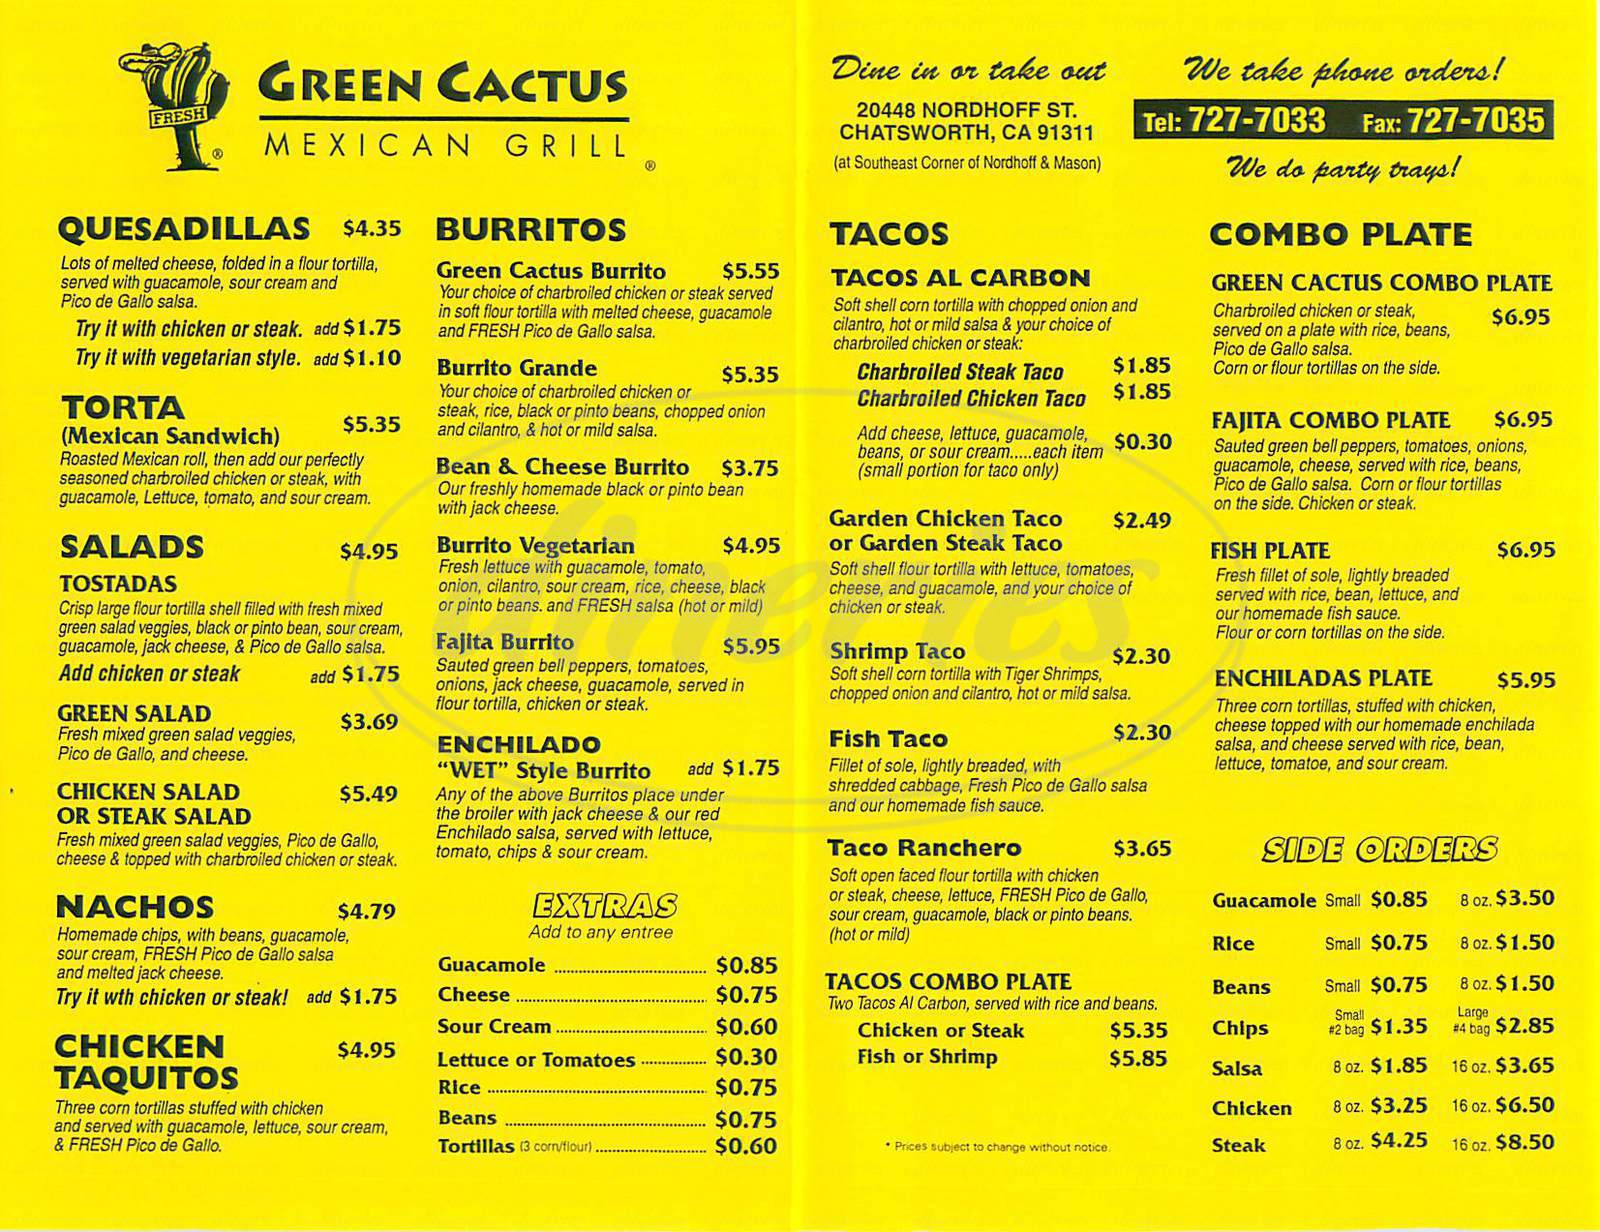 menu for Green Cactus